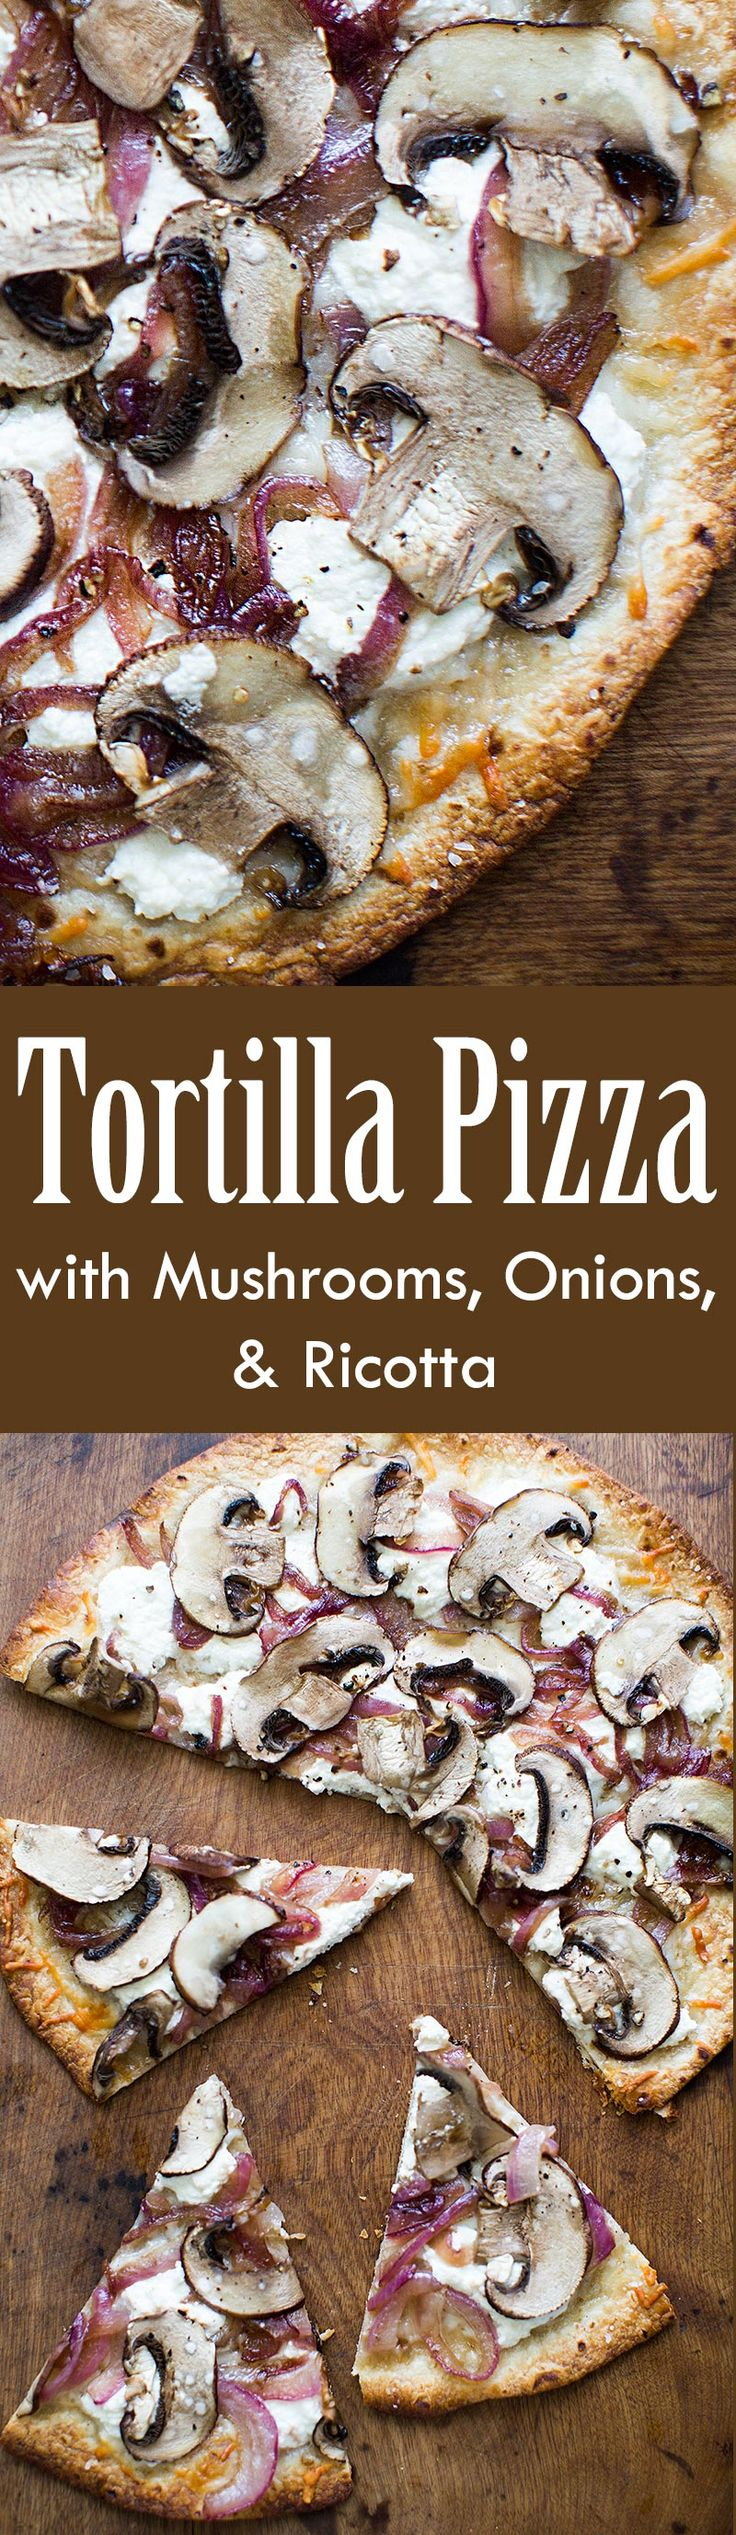 So quick and easy to make thin-crust pizza with flour tortillas! This one is out of this world delicious with caramelized onions, mushrooms, and ricotta. All the pizza goodness with half the carbs! On SimplyRecipes.com